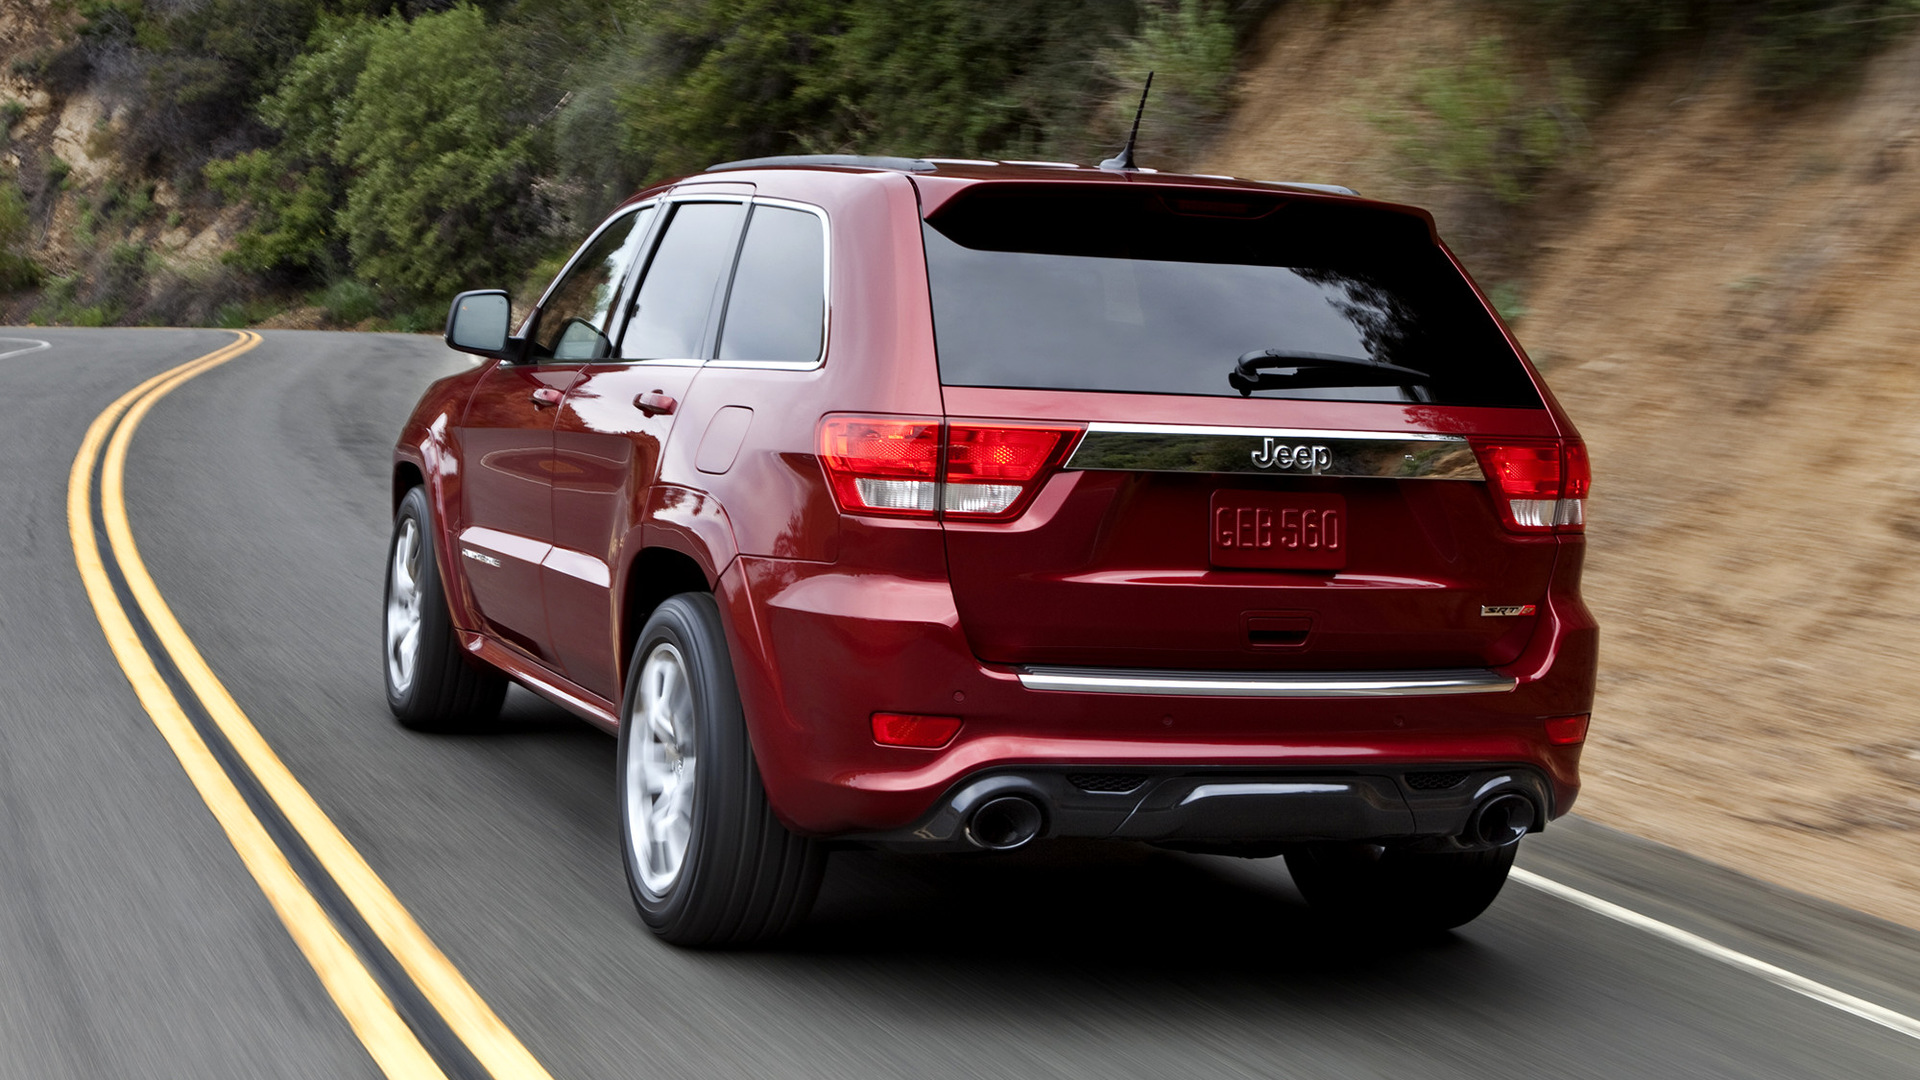 2011 Jeep Grand Cherokee Srt8 Wallpapers And Hd Images